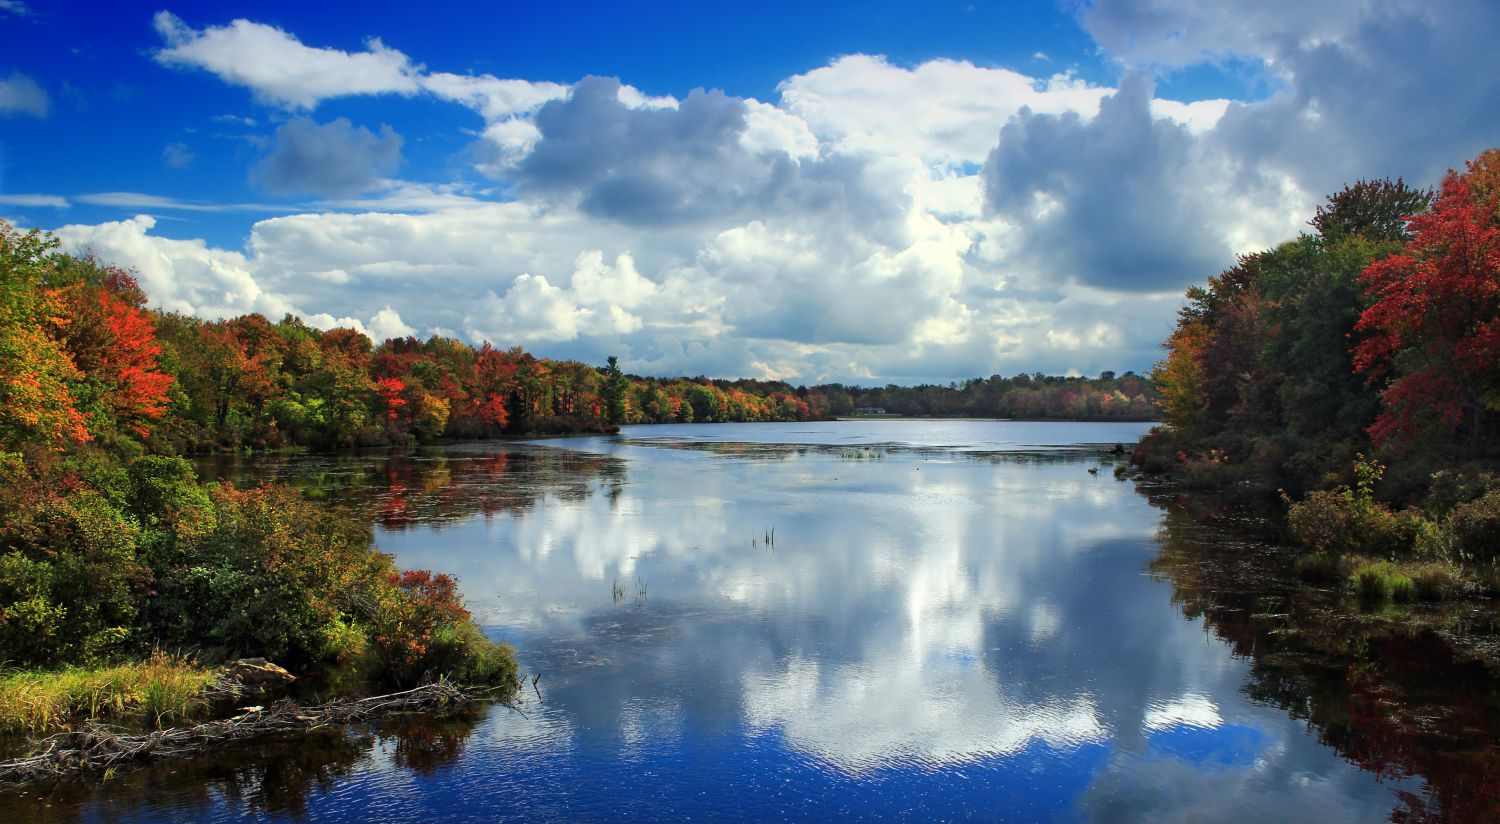 """""""Tobyhanna State Park"""" - Photo Credit: Nicholas A. Tonelli from Northeast Pennsylvania, USA [CC BY 2.0 (https://creativecommons.org/licenses/by/2.0)], via Wikimedia Commons - no changes made"""